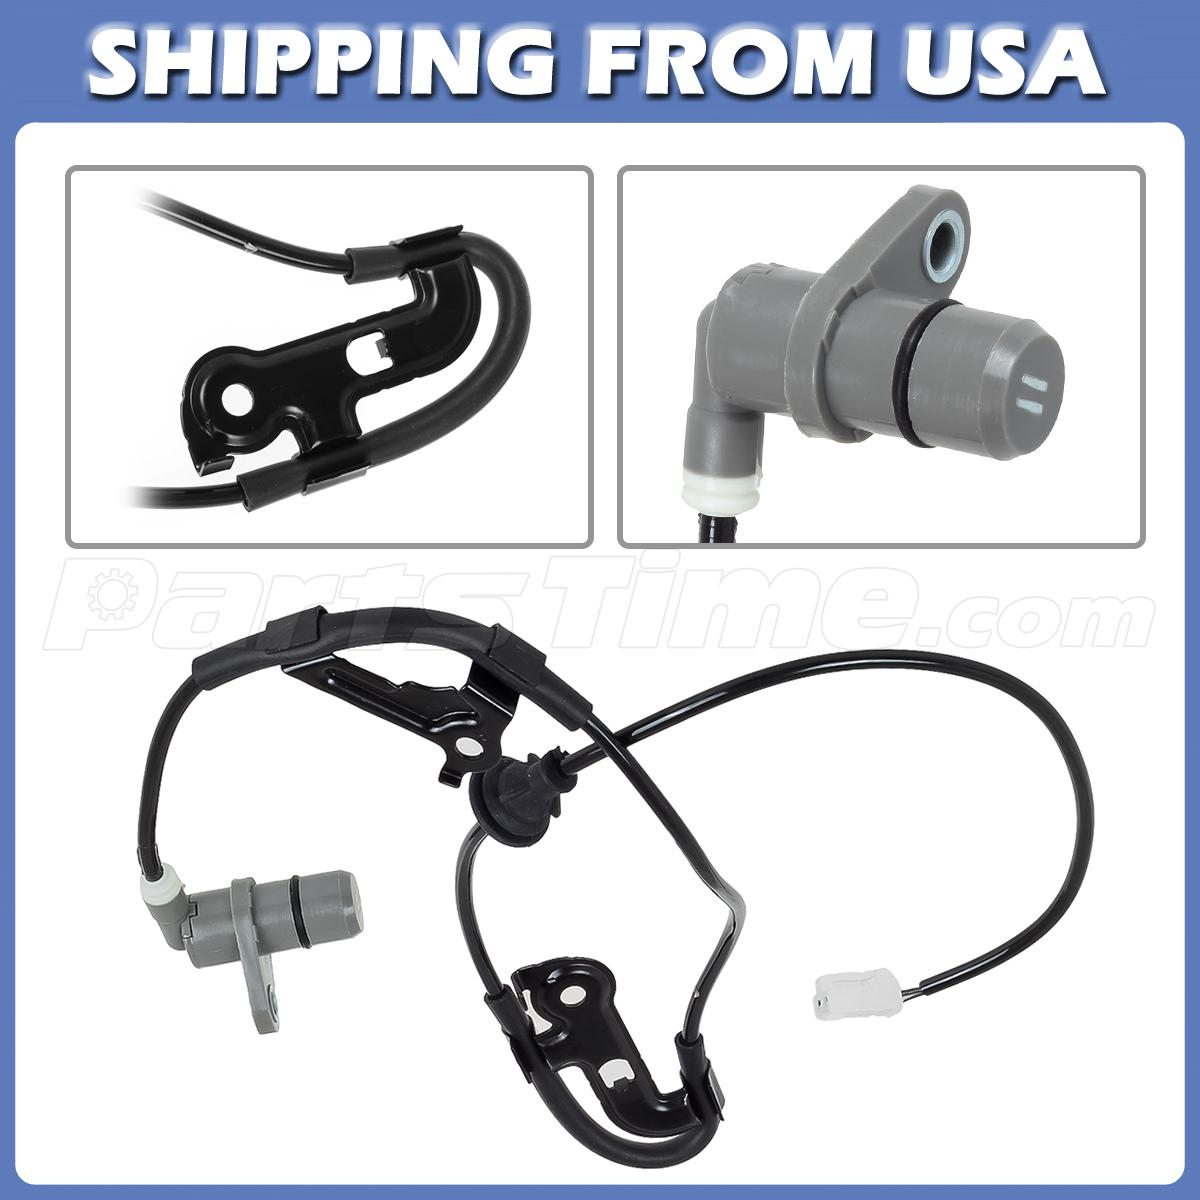 1992 Toyota Camry Transmission: ABS Wheel Speed Sensor Right Rear 89545 33020 ALS266 For